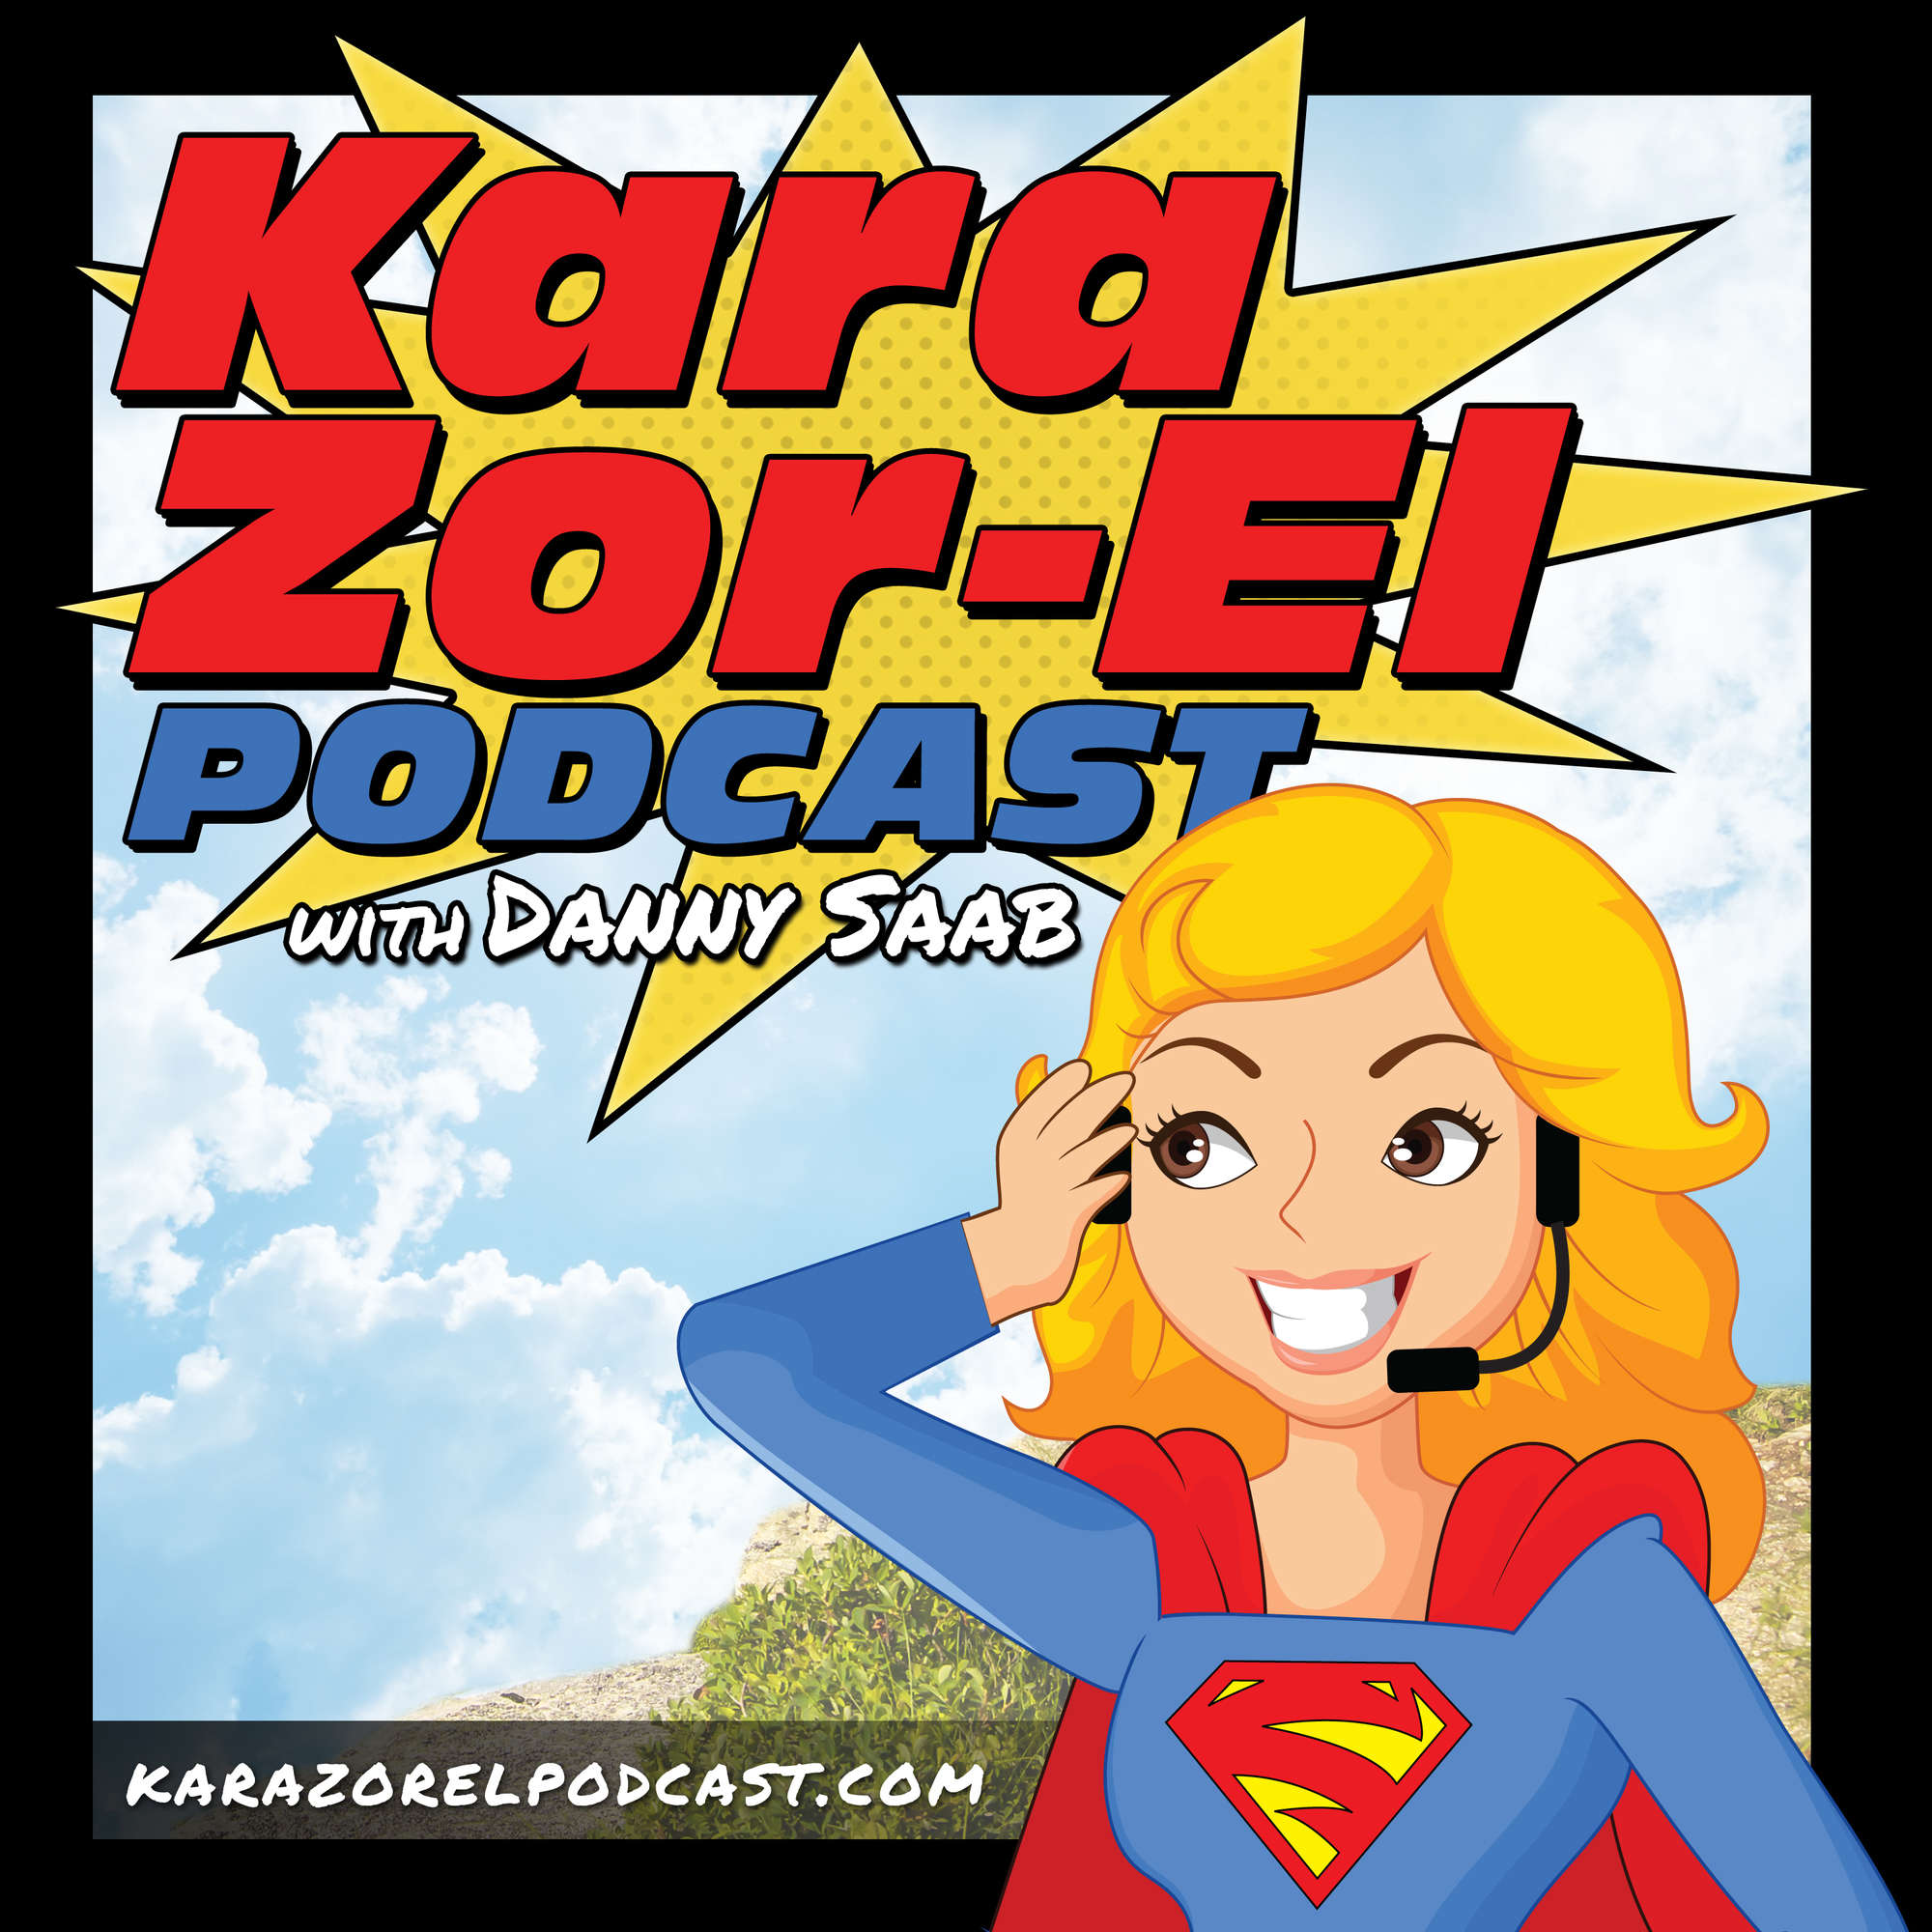 Kara Zor-El Podcast